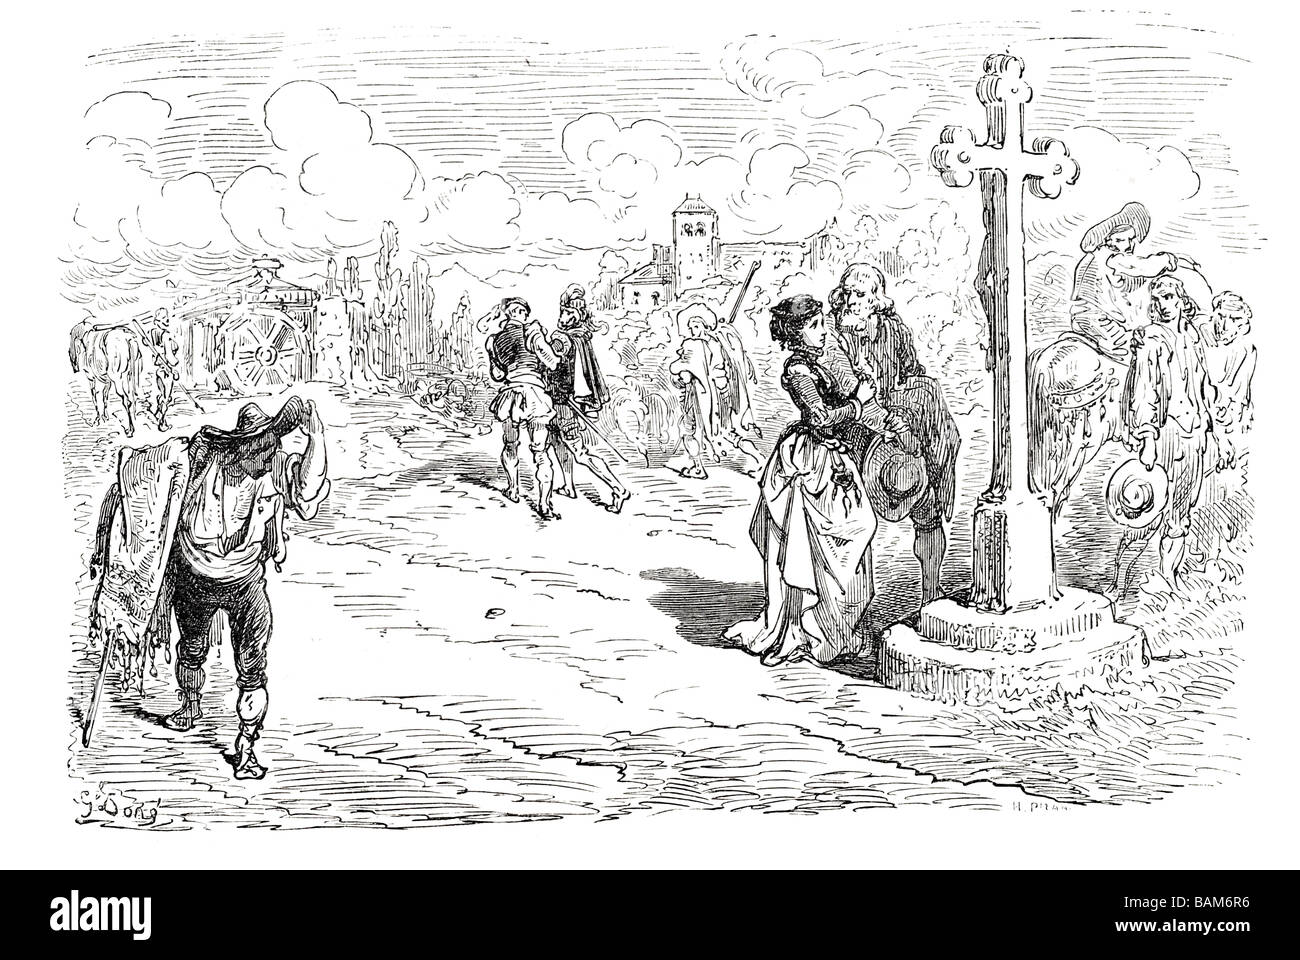 chapter XLVII the goatherd s tale 47 forty seven Don quixote spanish novel Alonso Quixano Cervantes literature quest Stock Photo